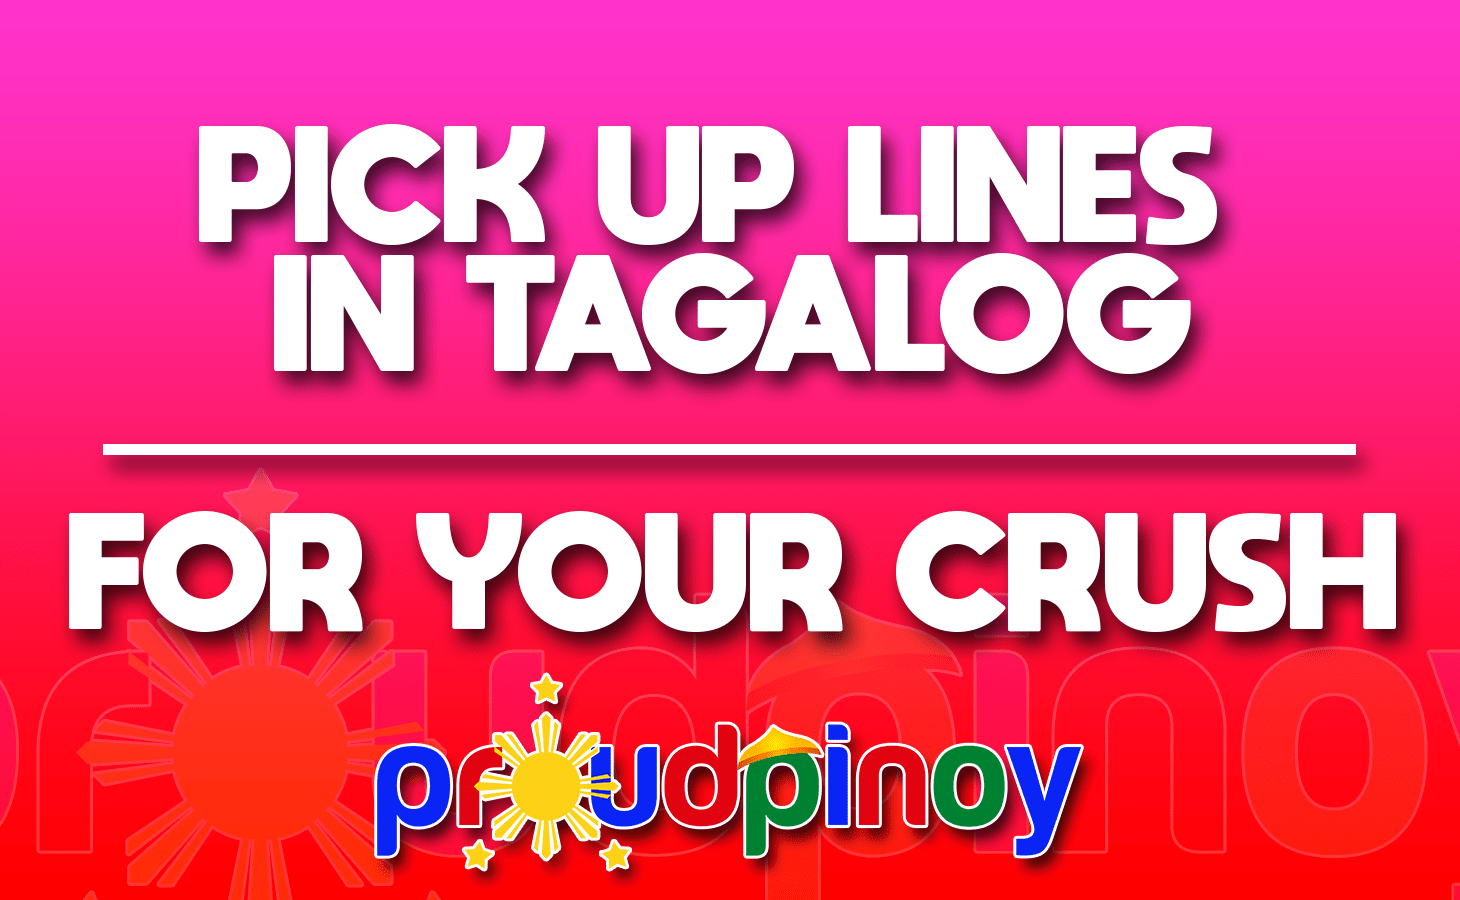 Pick up lines 2017 tagalog 2019